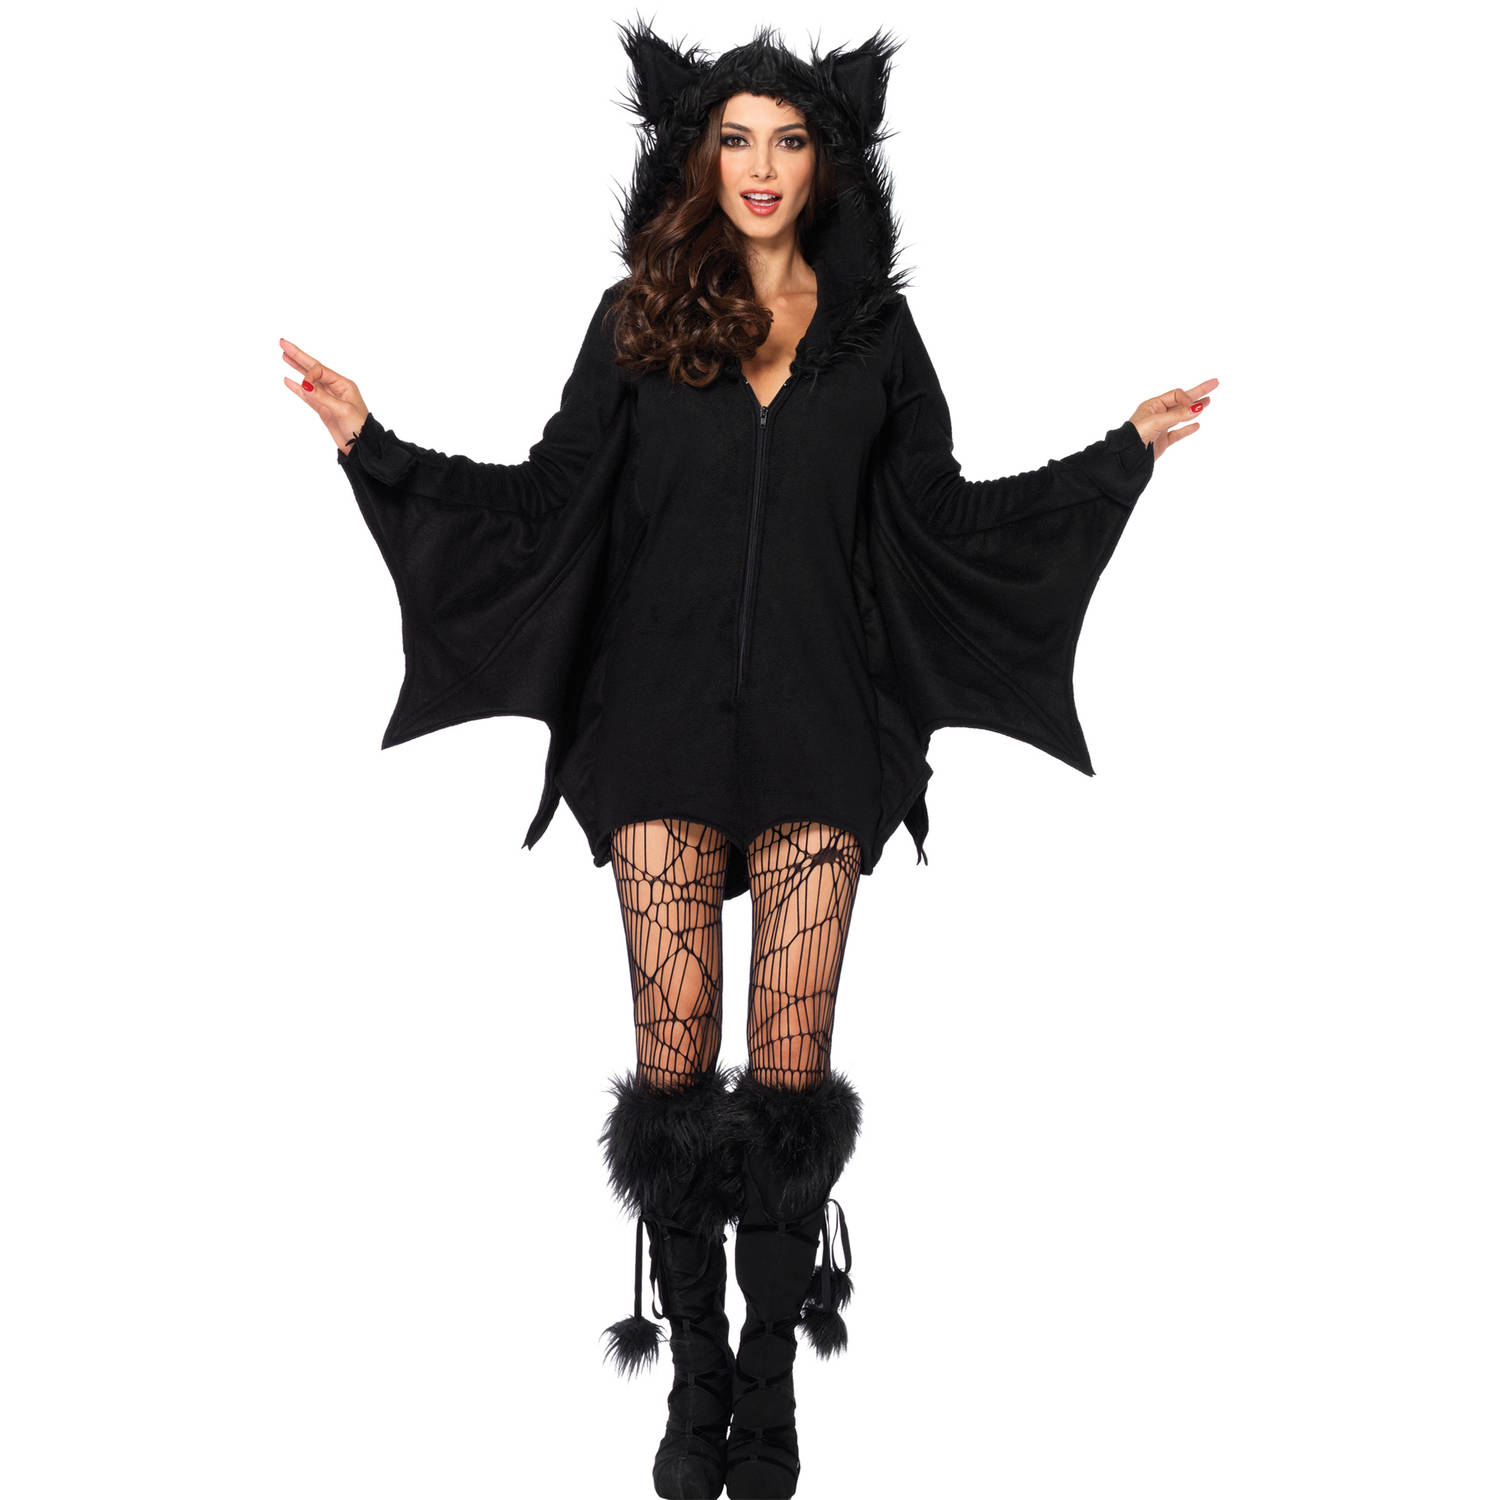 Leg Avenue Women's Cozy Bat Costume, Black, Small